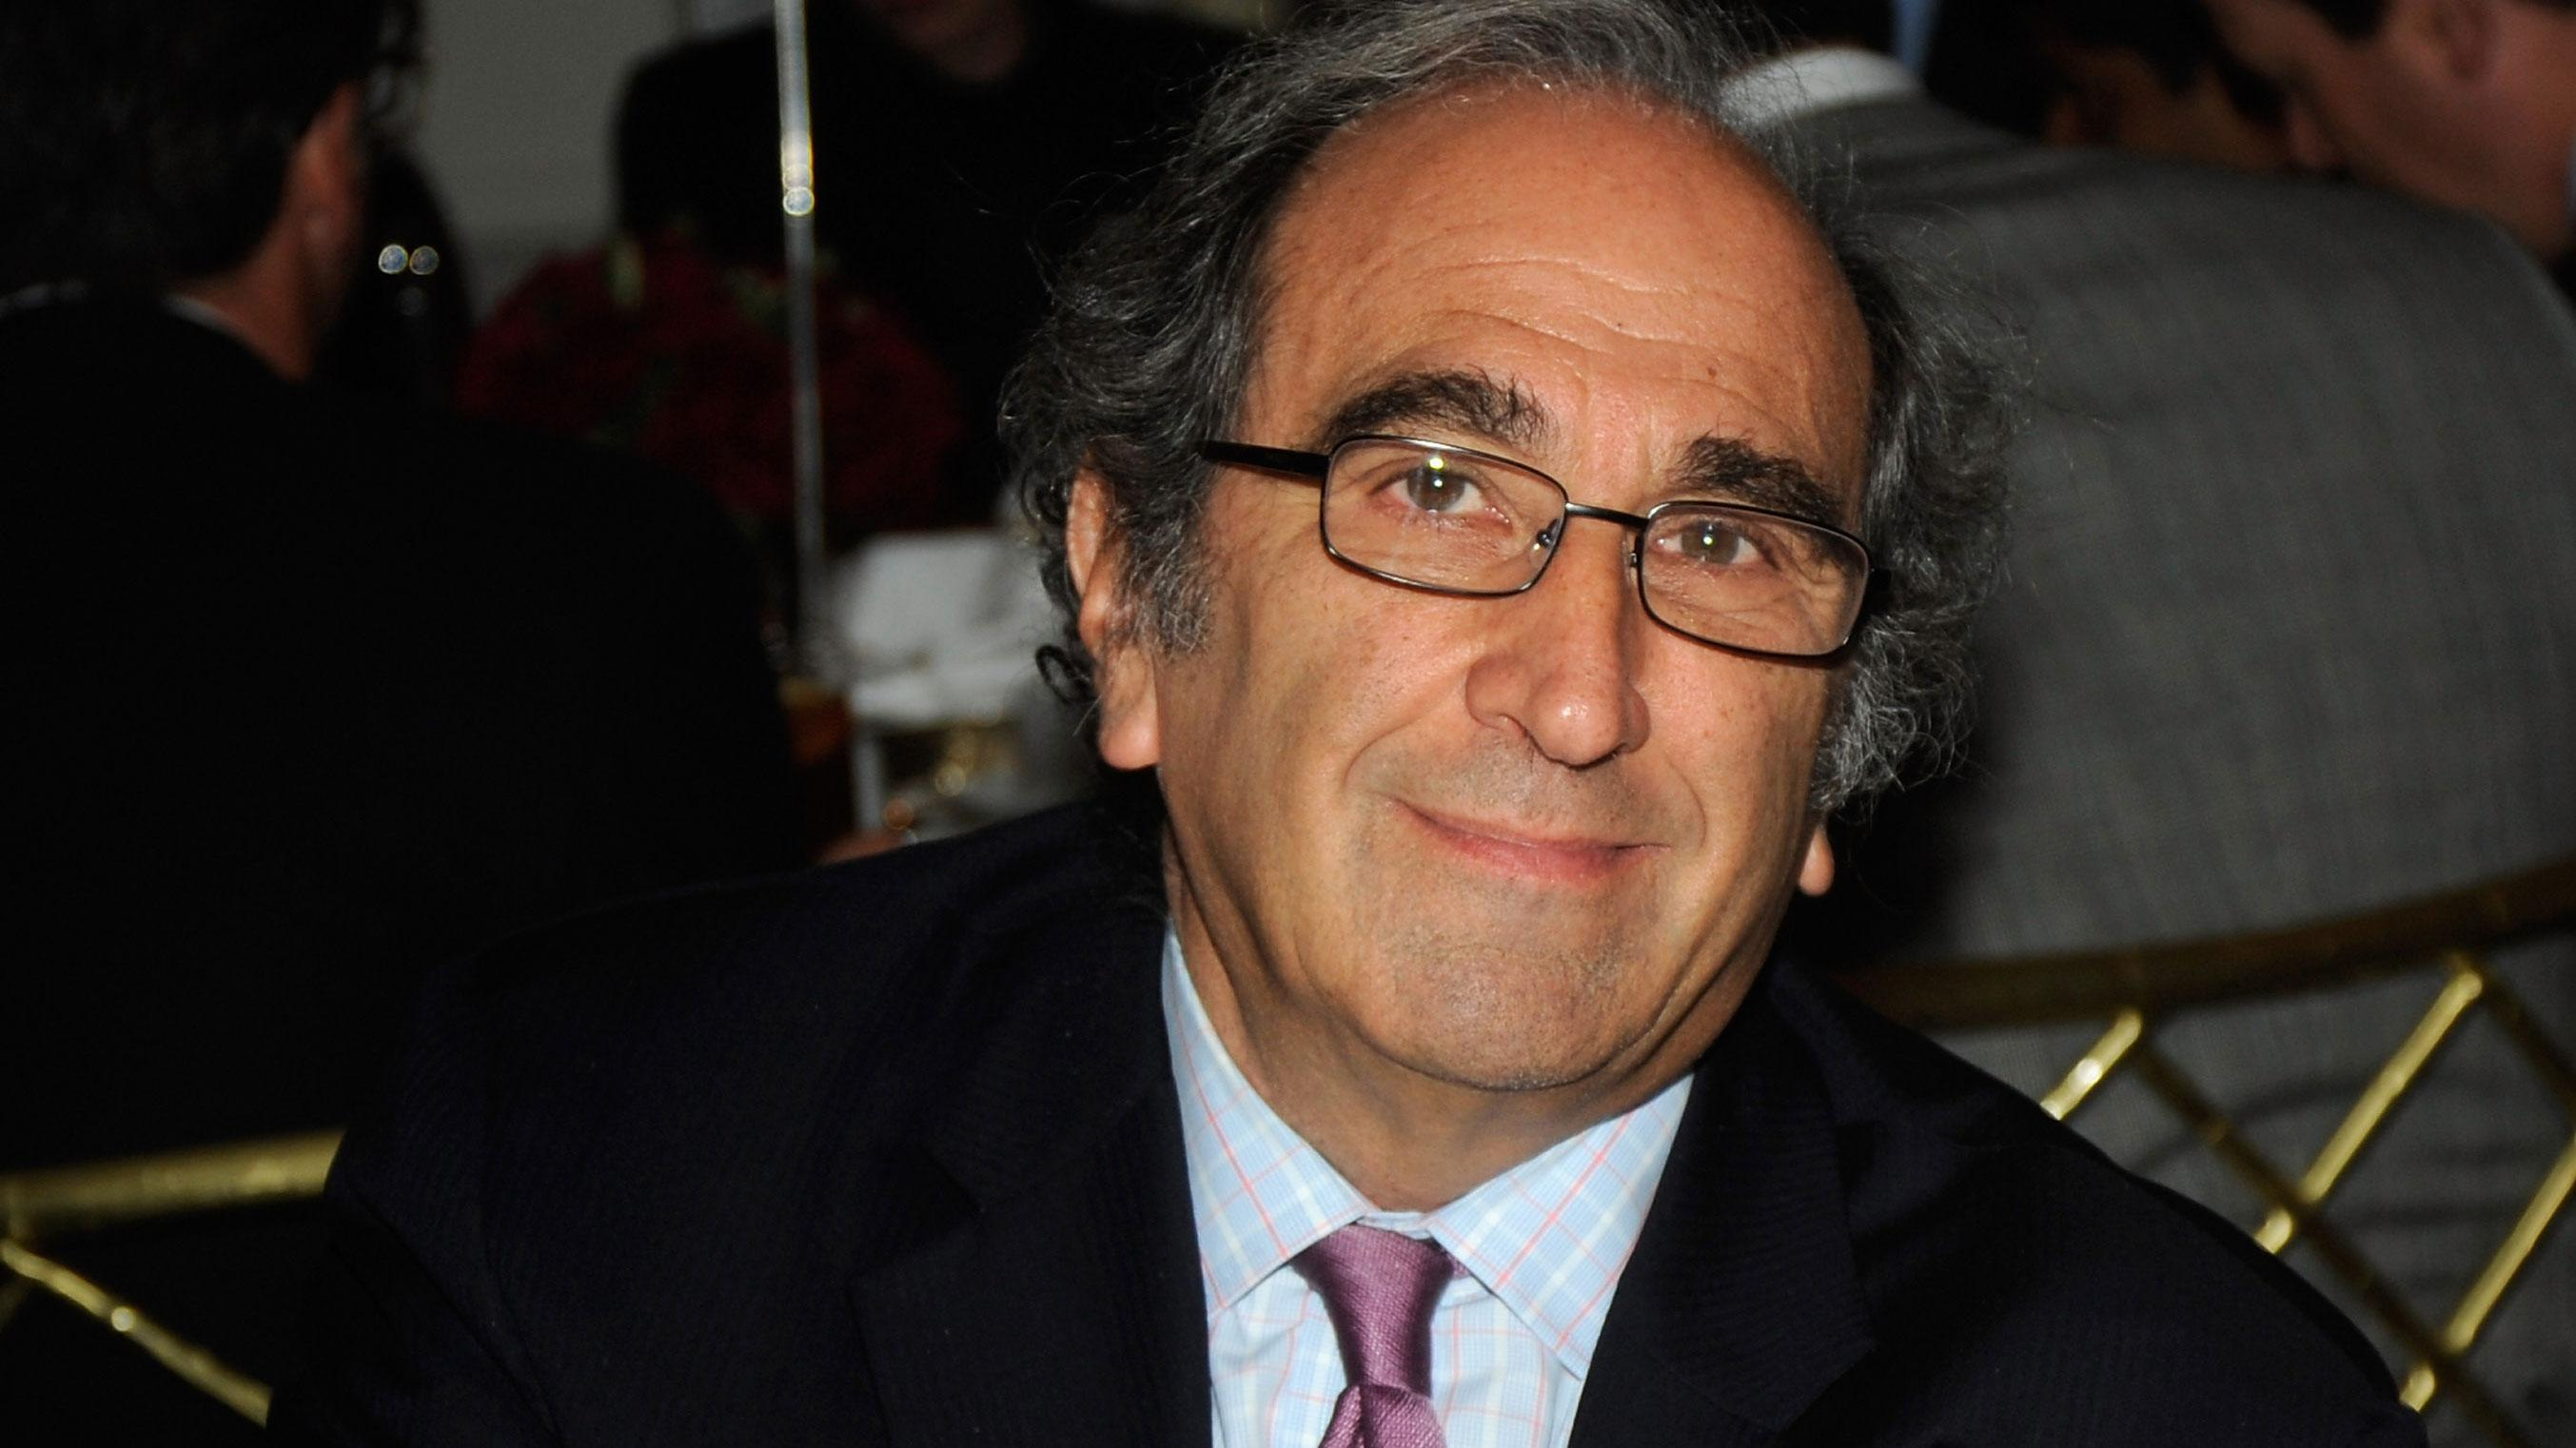 Andrew Lack Returns to NBC As News Chief, Will Face Challenges Restoring Credibility